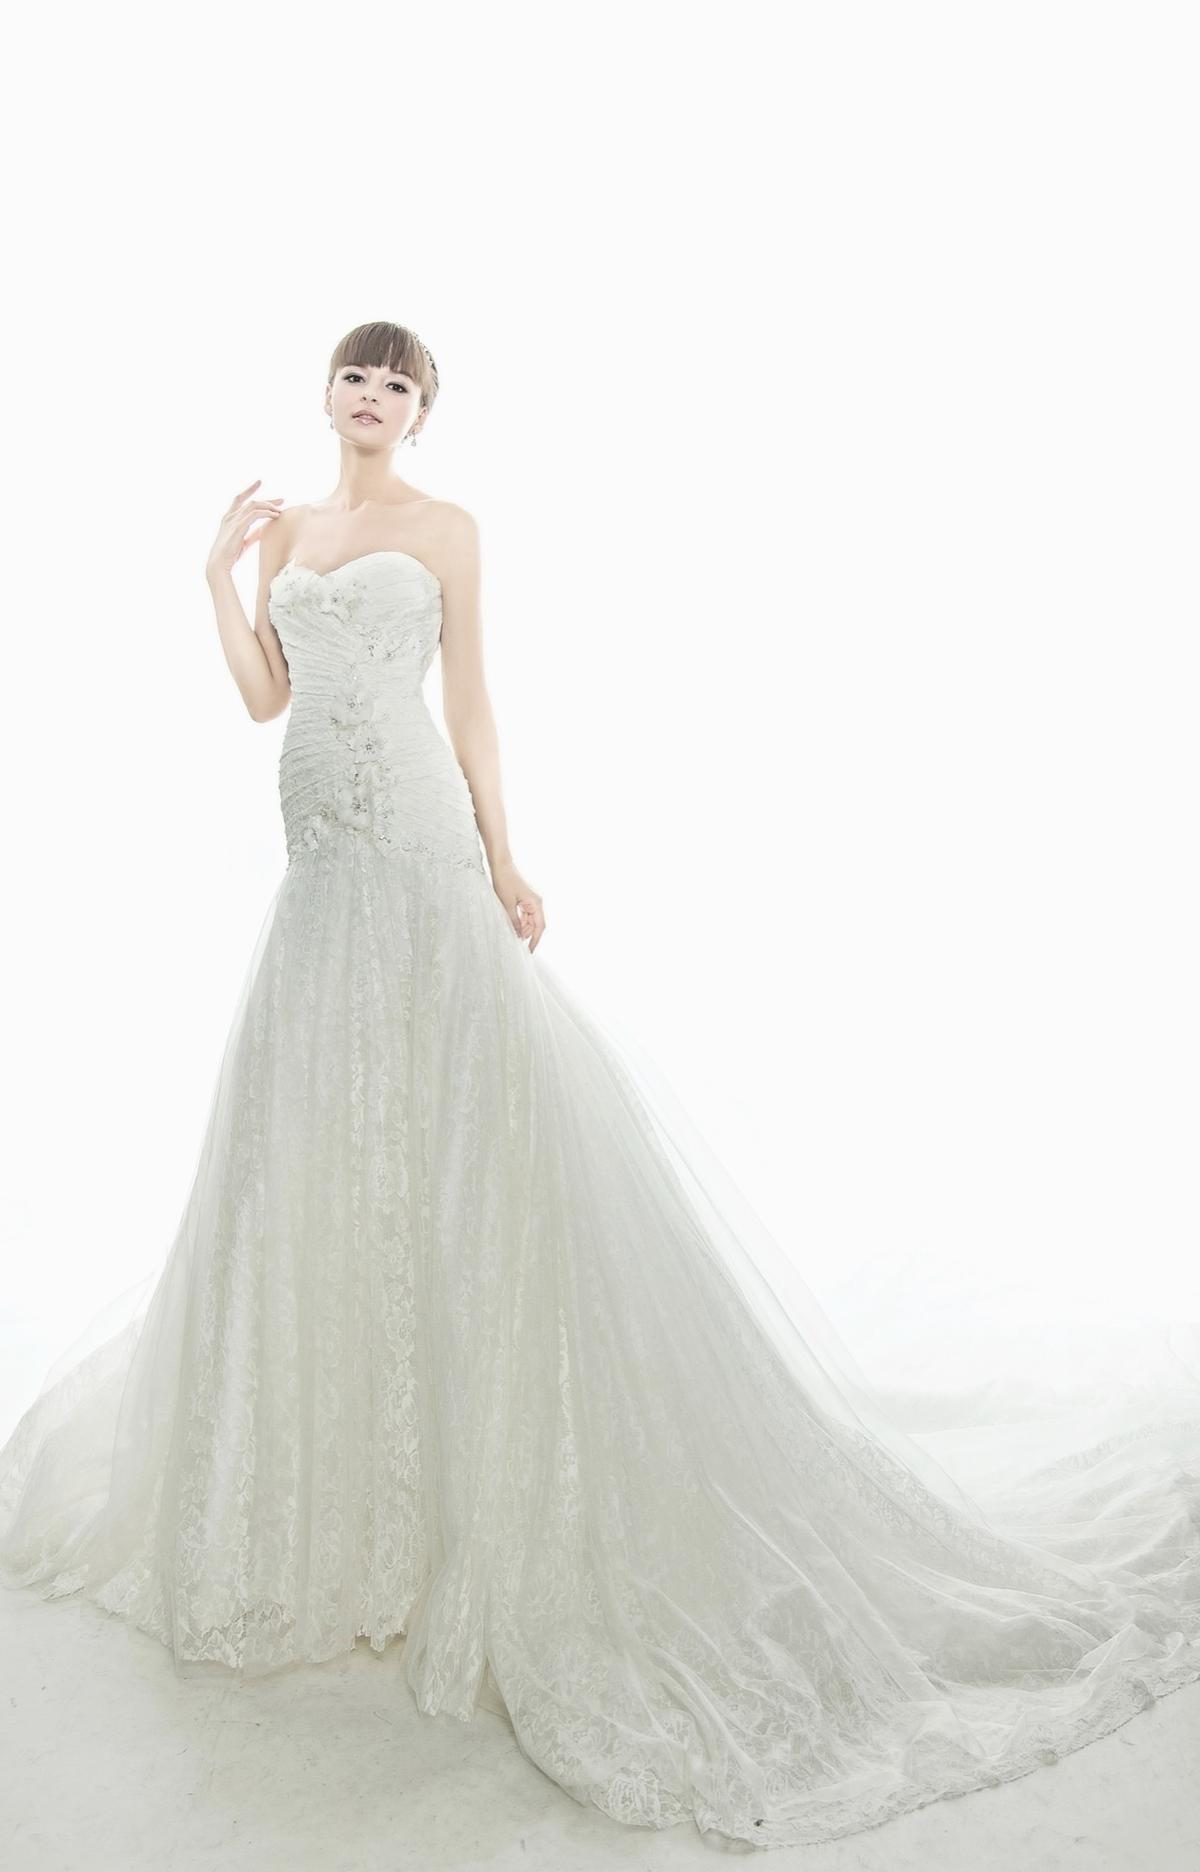 http://www.pwimages.com/images/perfectbride/667f61f5881542db2a8effc7b22c84ce-IMG_6572.jpg